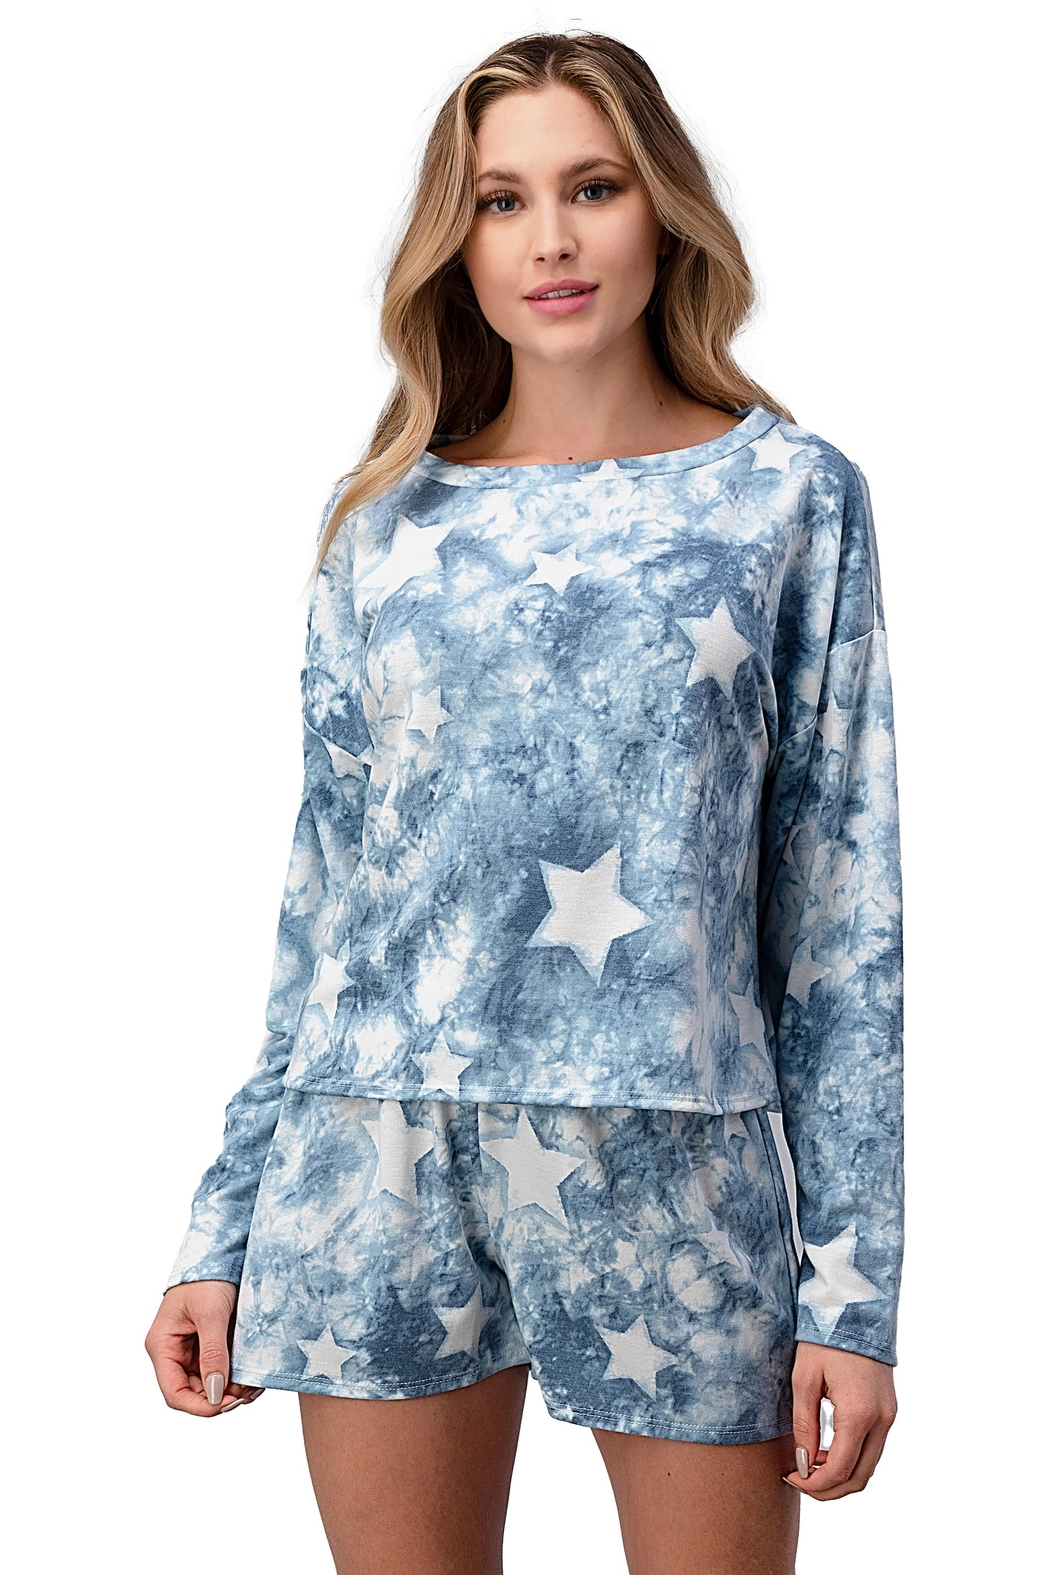 Miley and Molly Lounge Wear Pajama Set With Star Matching Set - Main Image